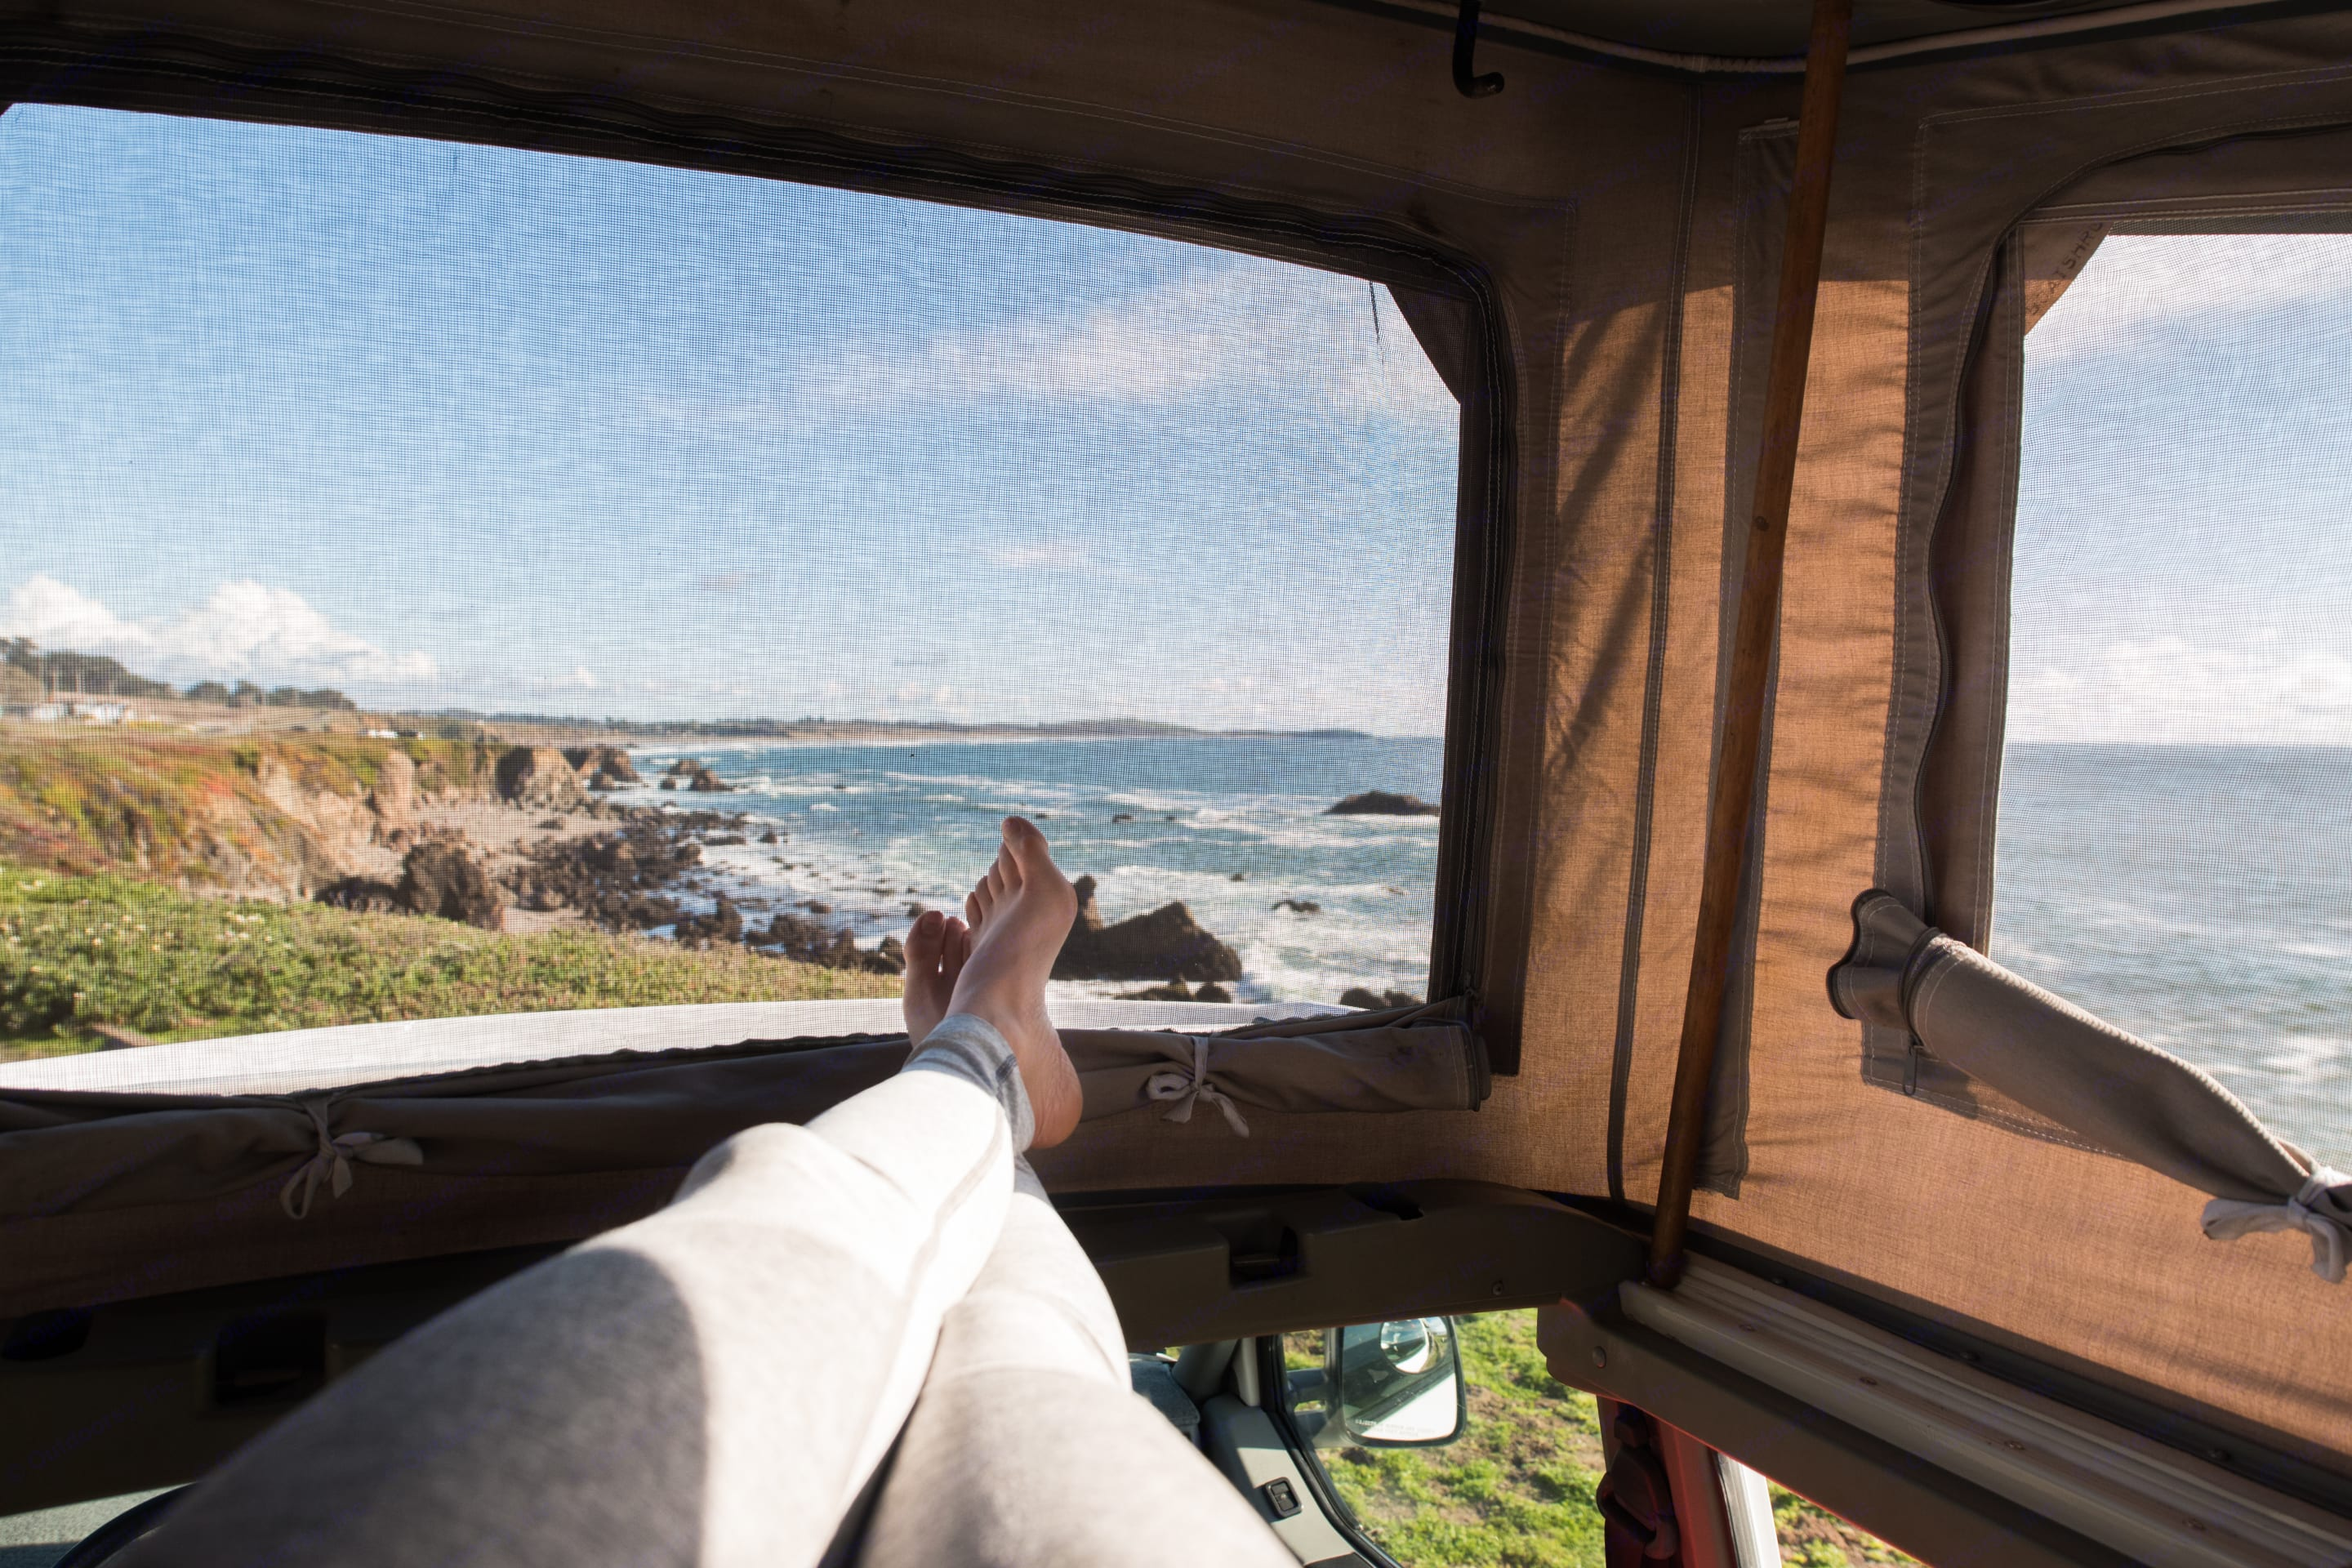 Get some R&R while taking in panoramic views. Volkswagen Eurovan Camper 1995